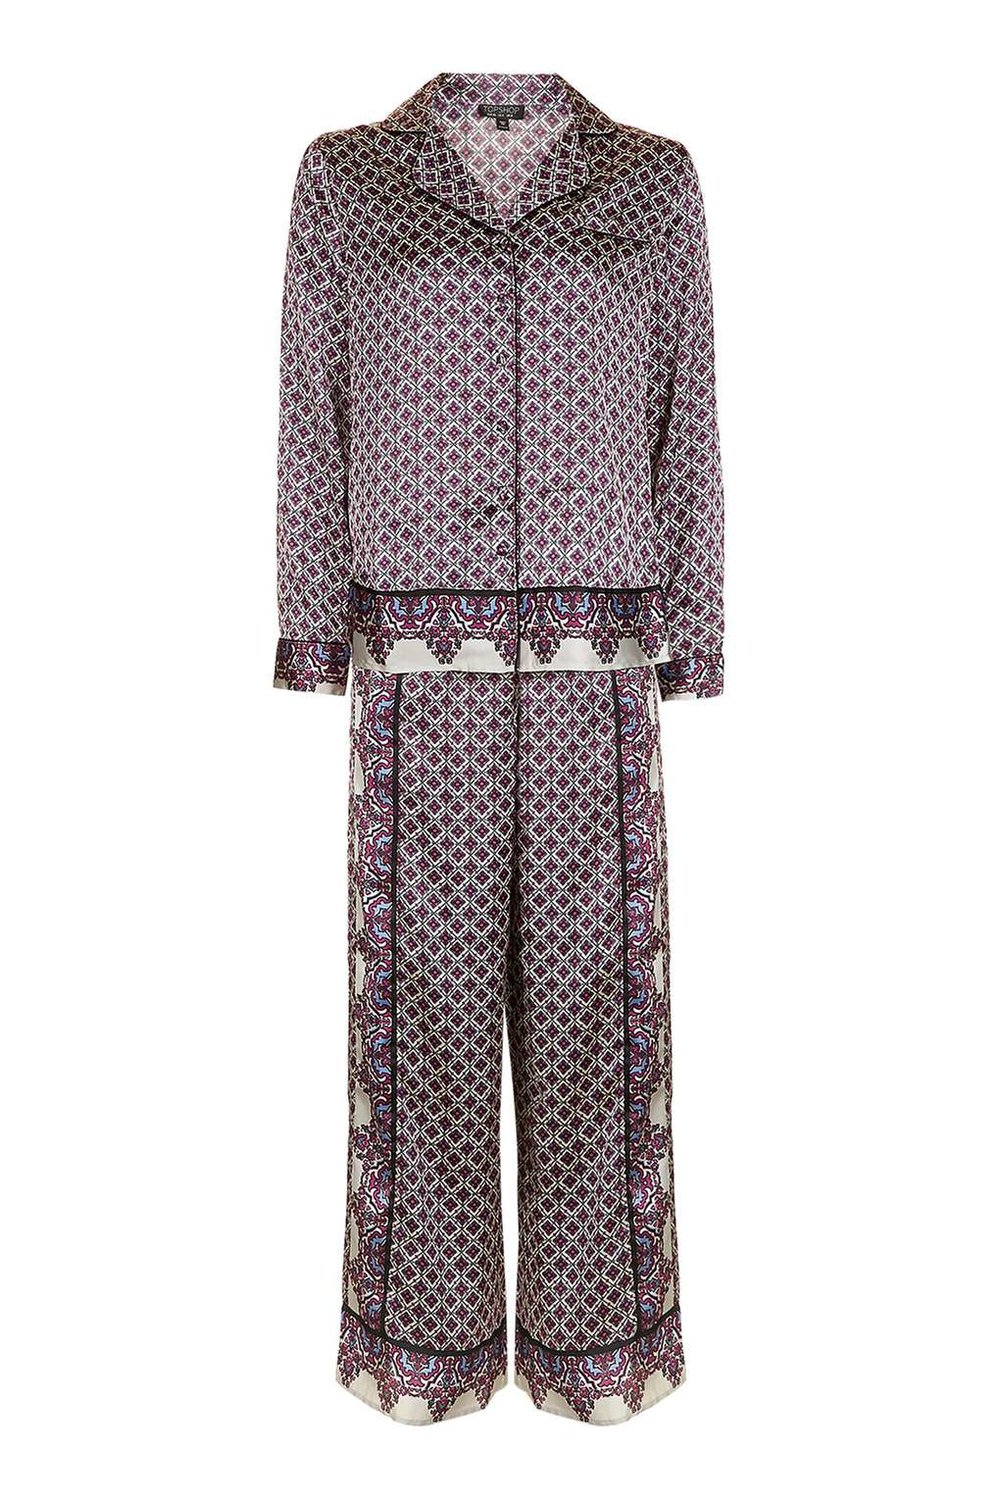 TOPSHOP TILE PATTERN SILK PAJAMA SET